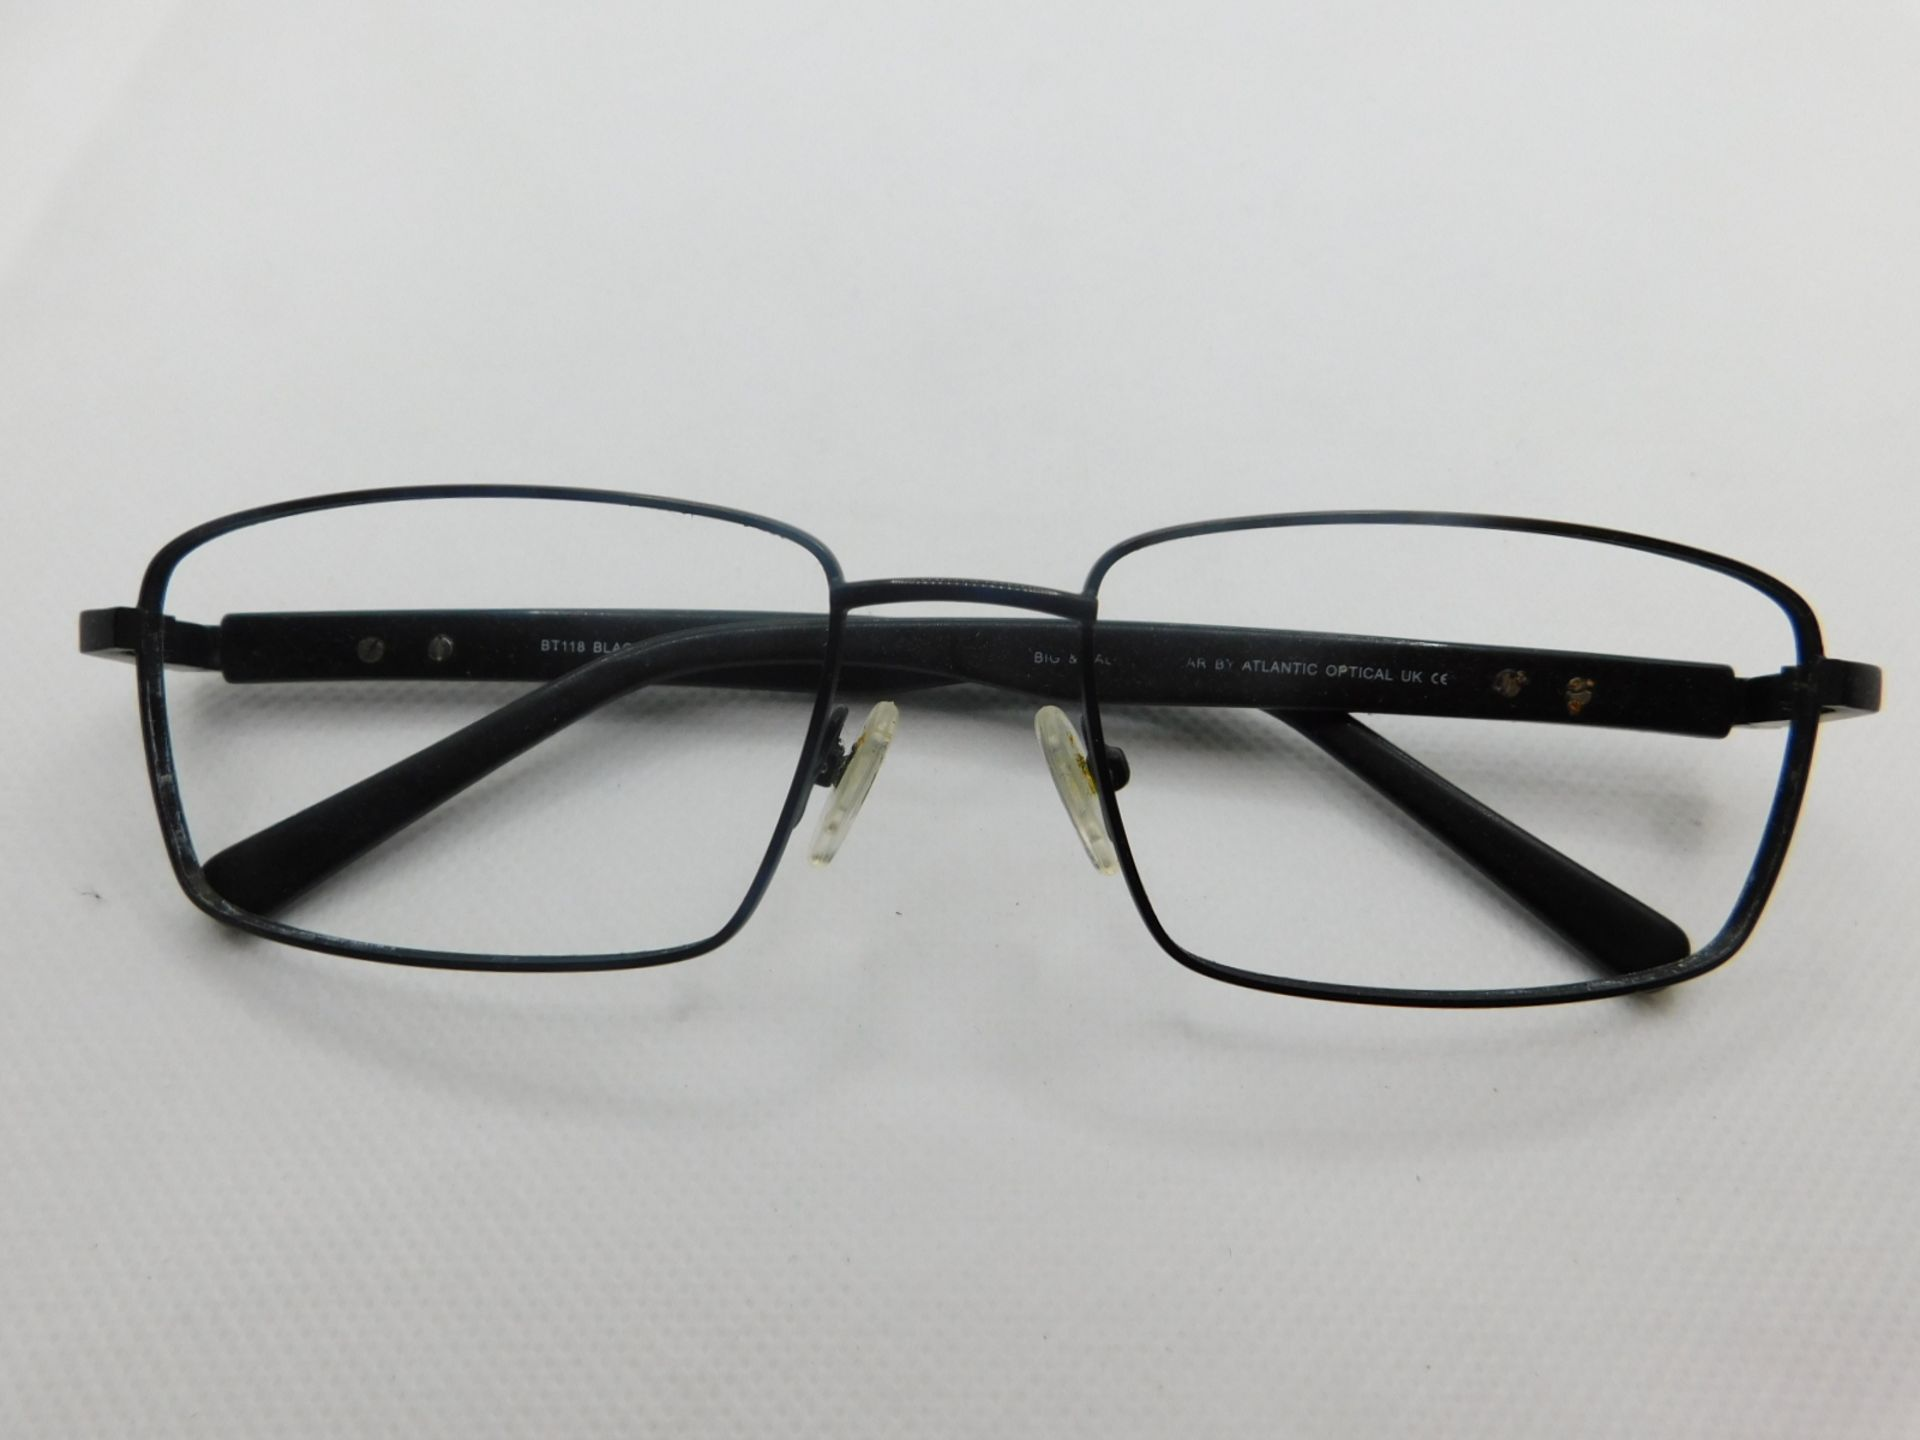 1 PAIR OF BIG AND TALL GLASSES FRAME WITH CASE MODEL BT118 RRP £79.99